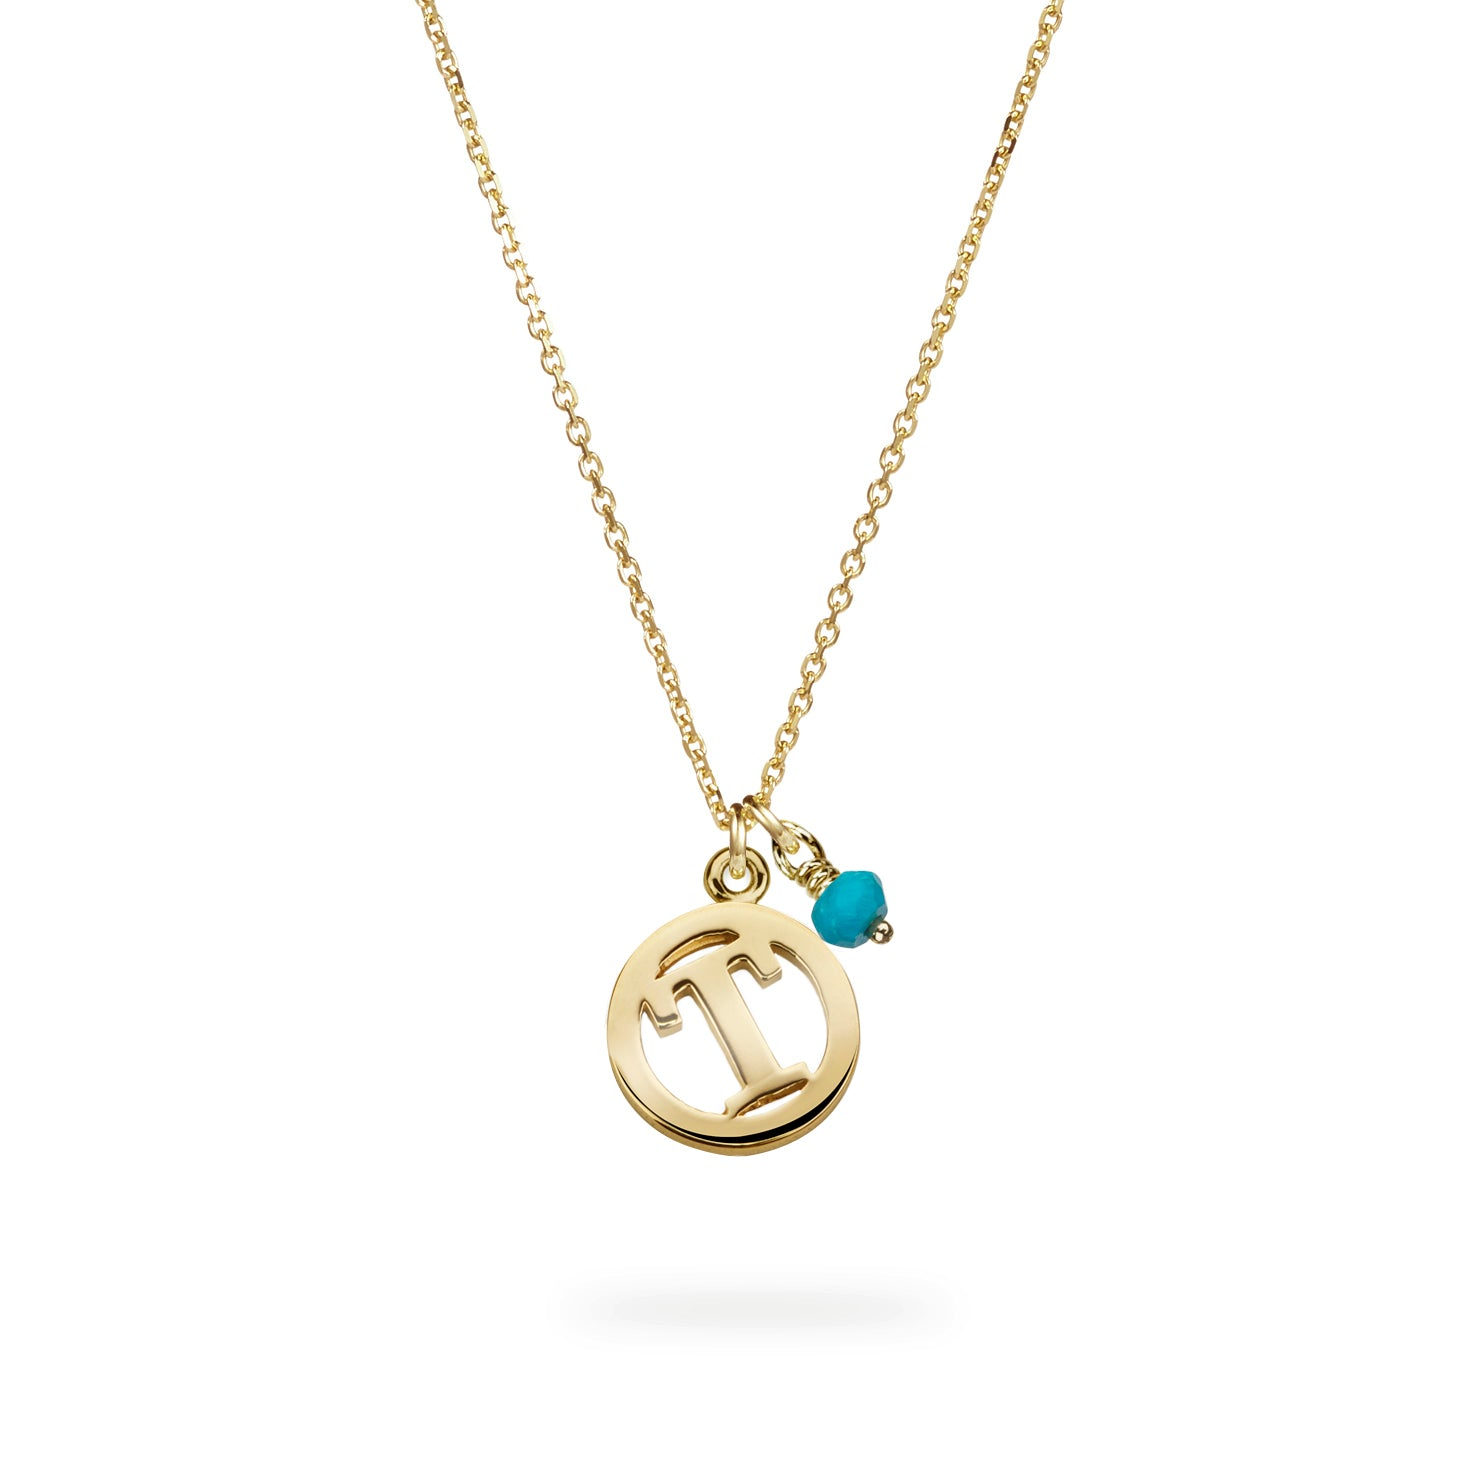 Luke Rose Jewellery gold turquoise initial necklace